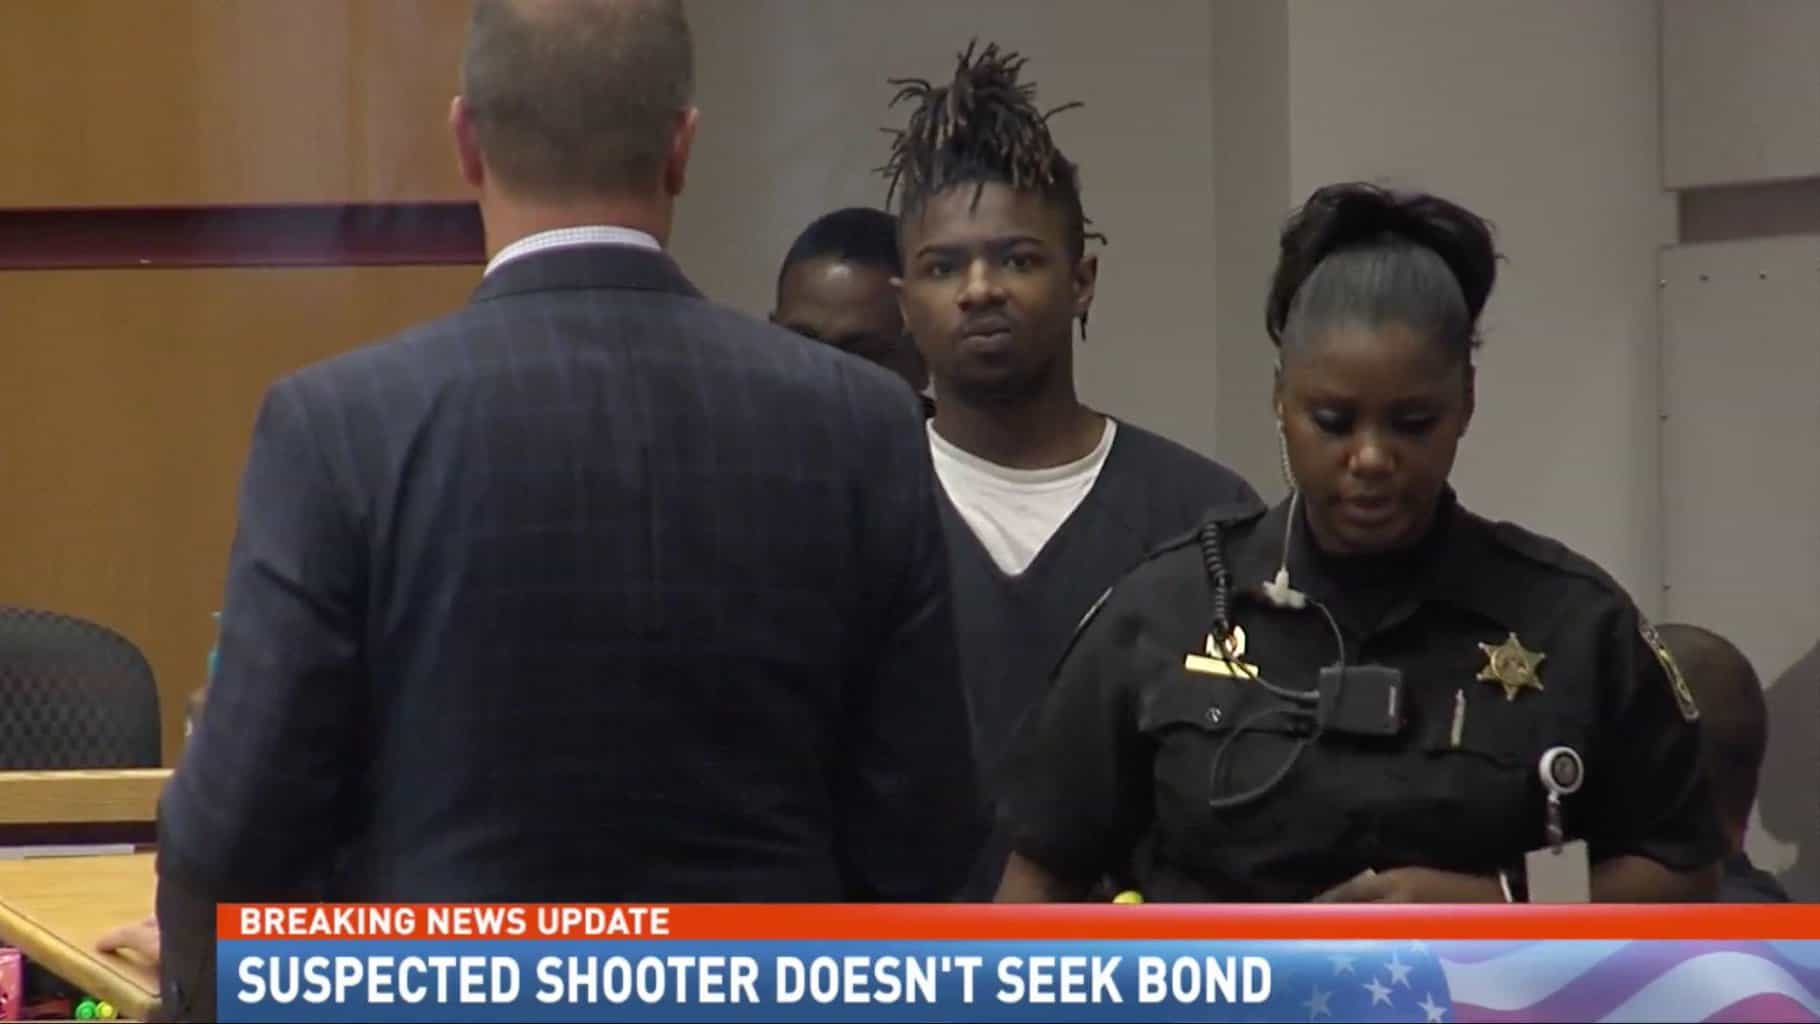 Suspect in Shooting, McAlpine, Doesn't Seek Bond